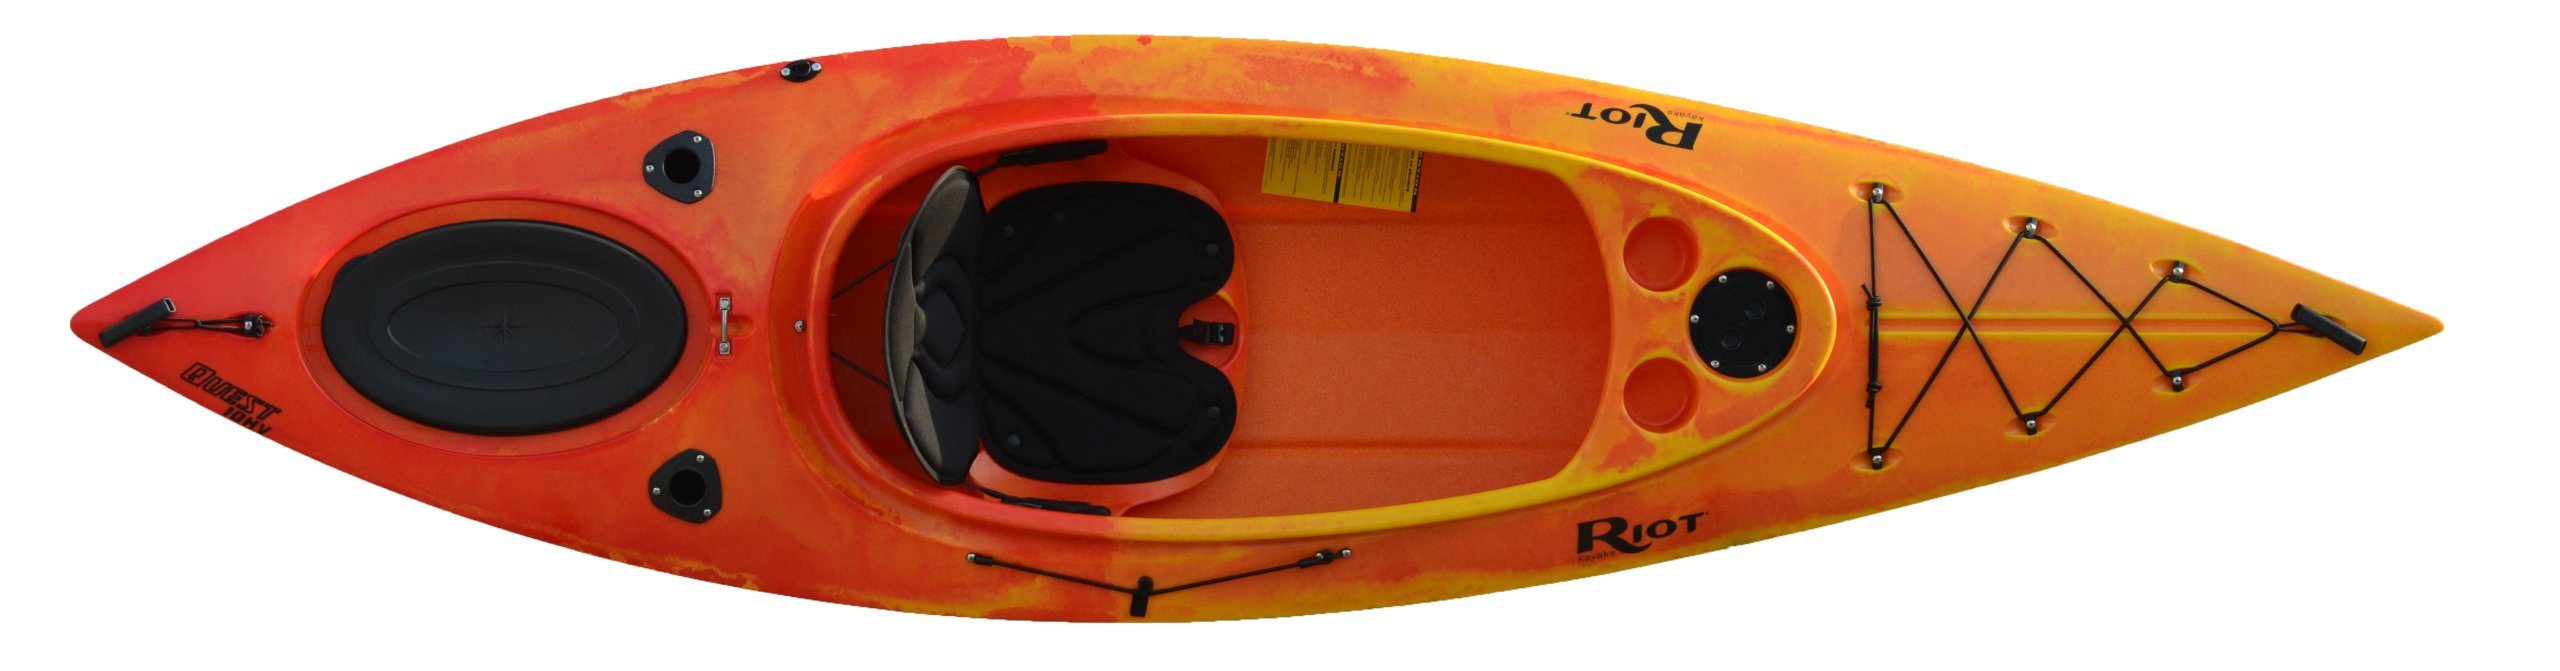 Riot Kayaks Quest 10 HV Flatwater Day Touring Kayak, Yellow/Red by Riot Kayaks